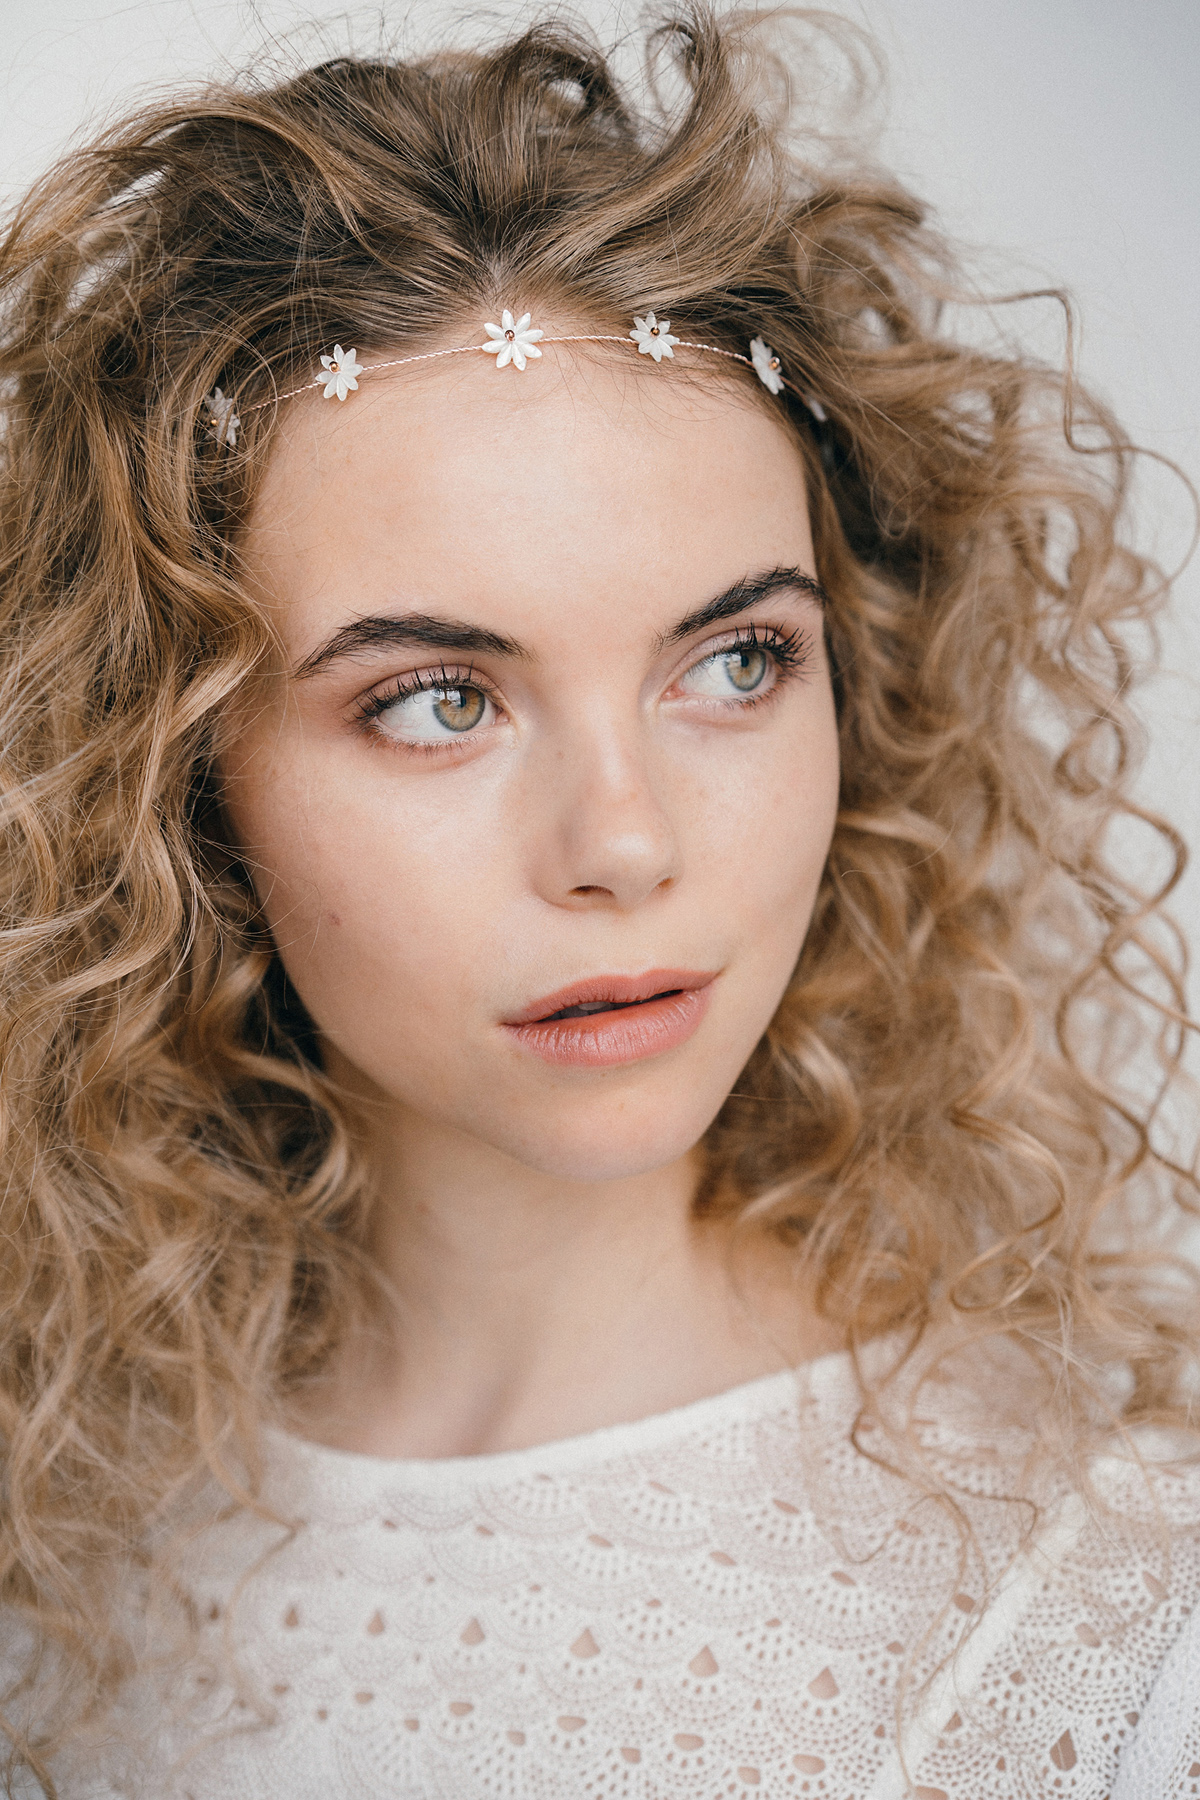 How To Style Wedding Hair Accessories With Curly Hair Debbie Carlisle Top Hair Care Tips For Curly Haired Brides Love My Dress Uk Wedding Blog Wedding Directory